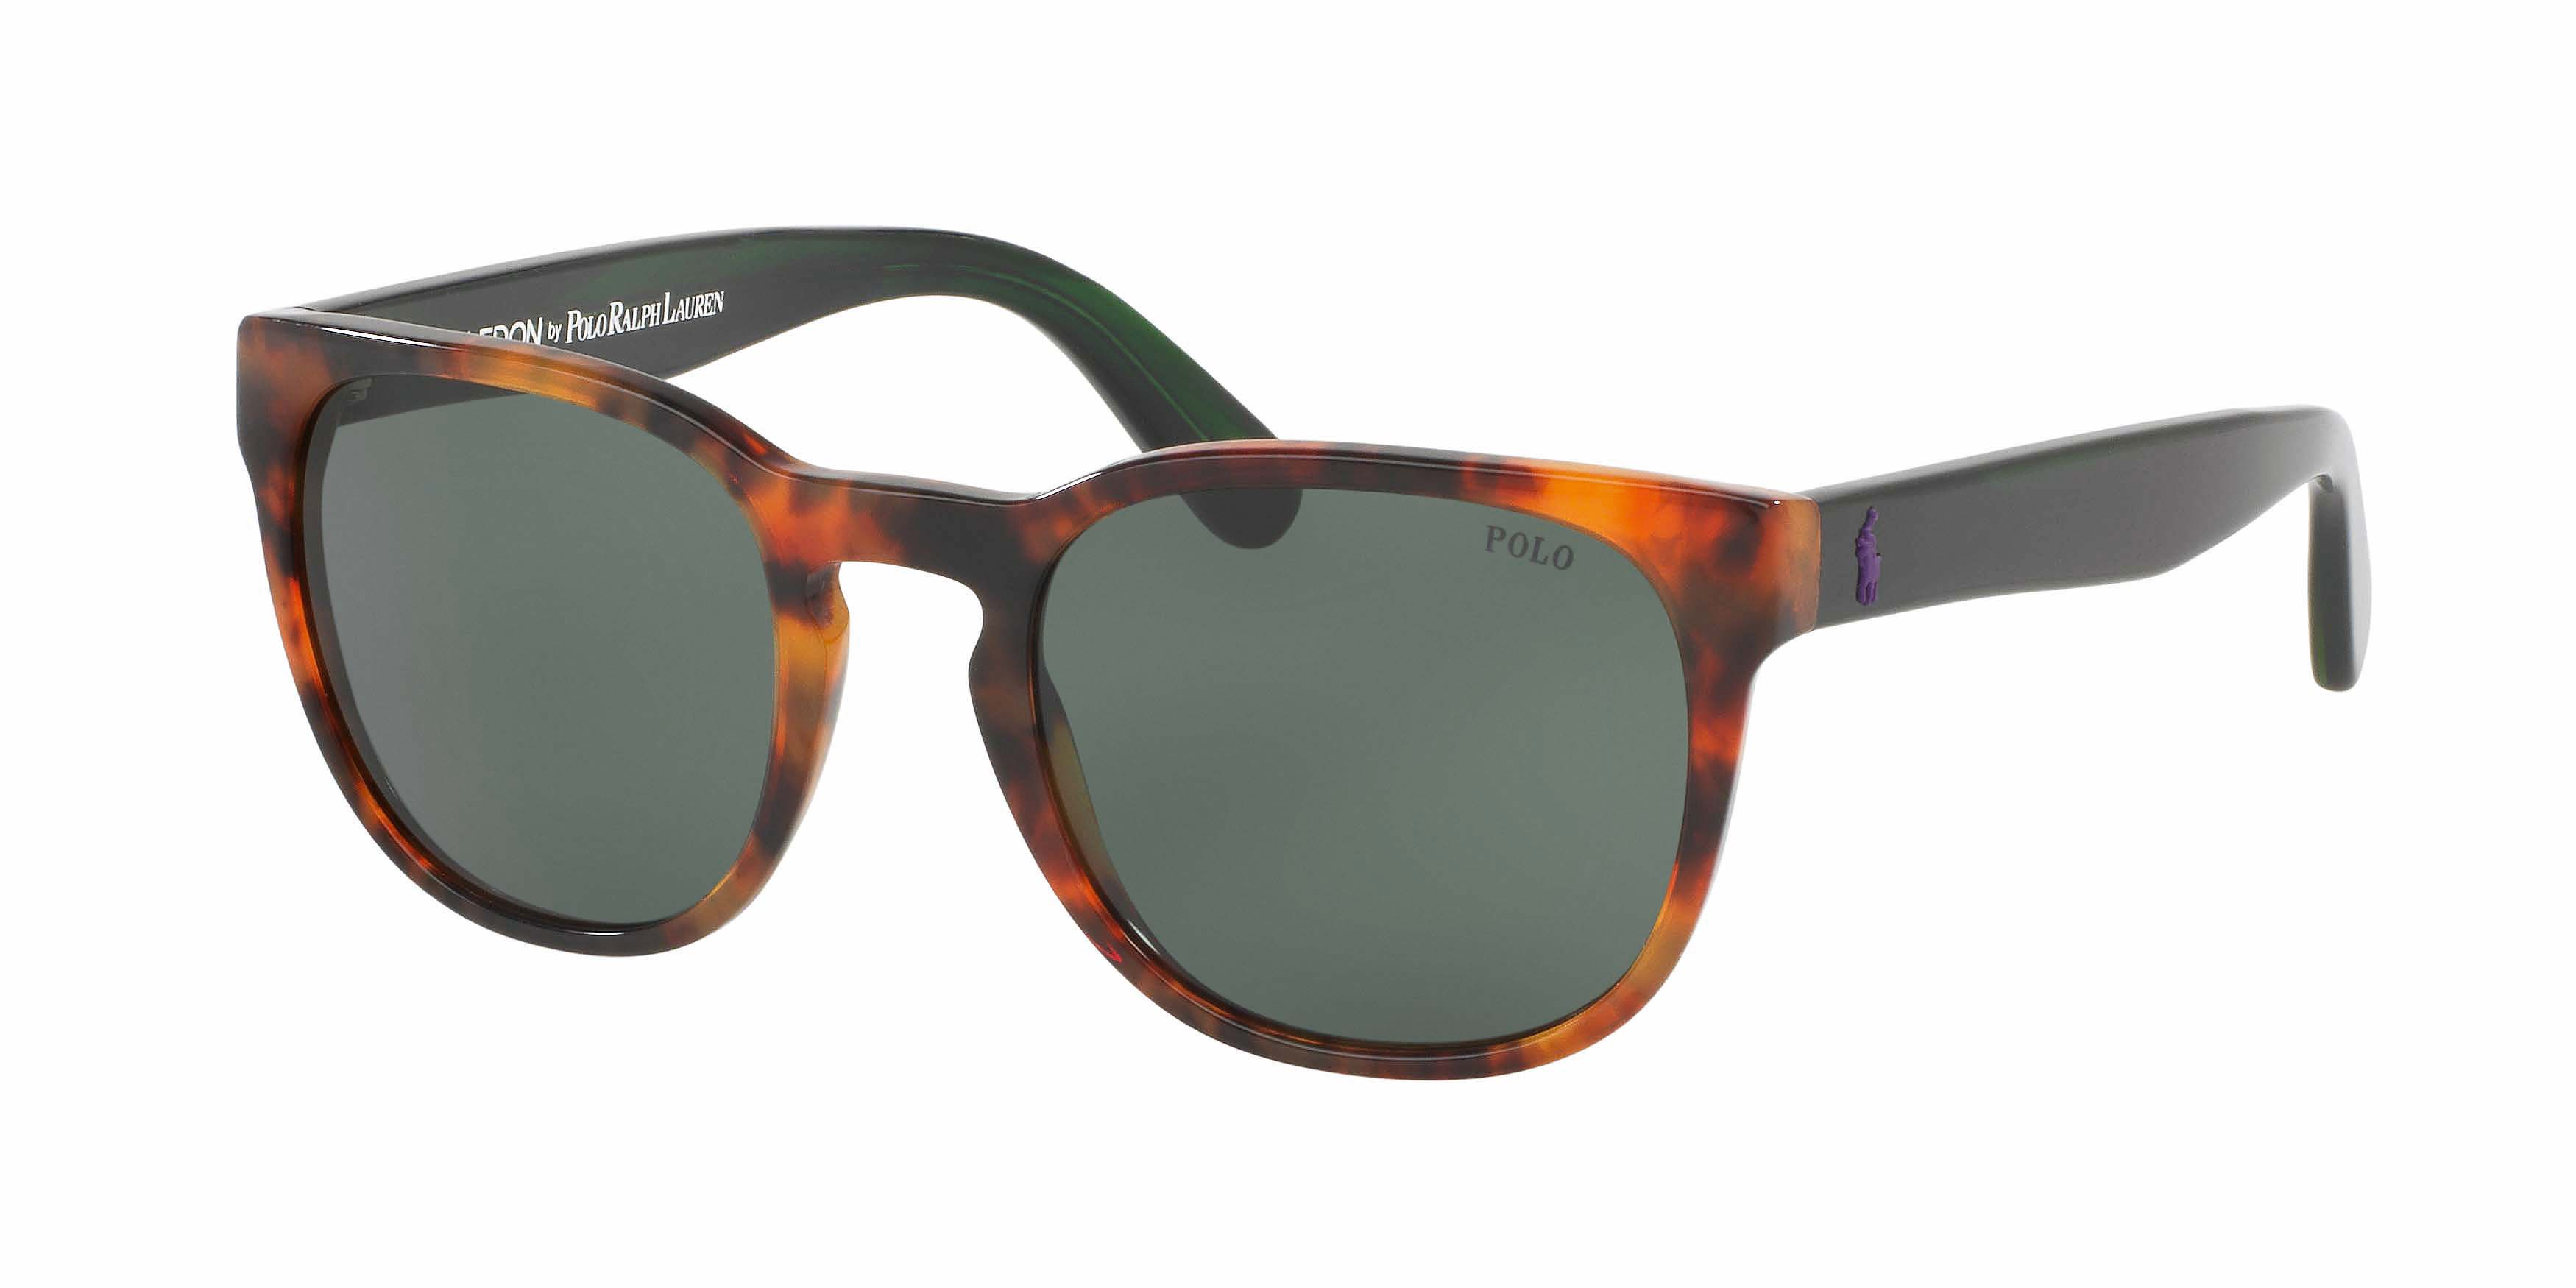 8e1c3737ee Discover Wimbledon by Polo Ralph Lauren Sunglass Collection